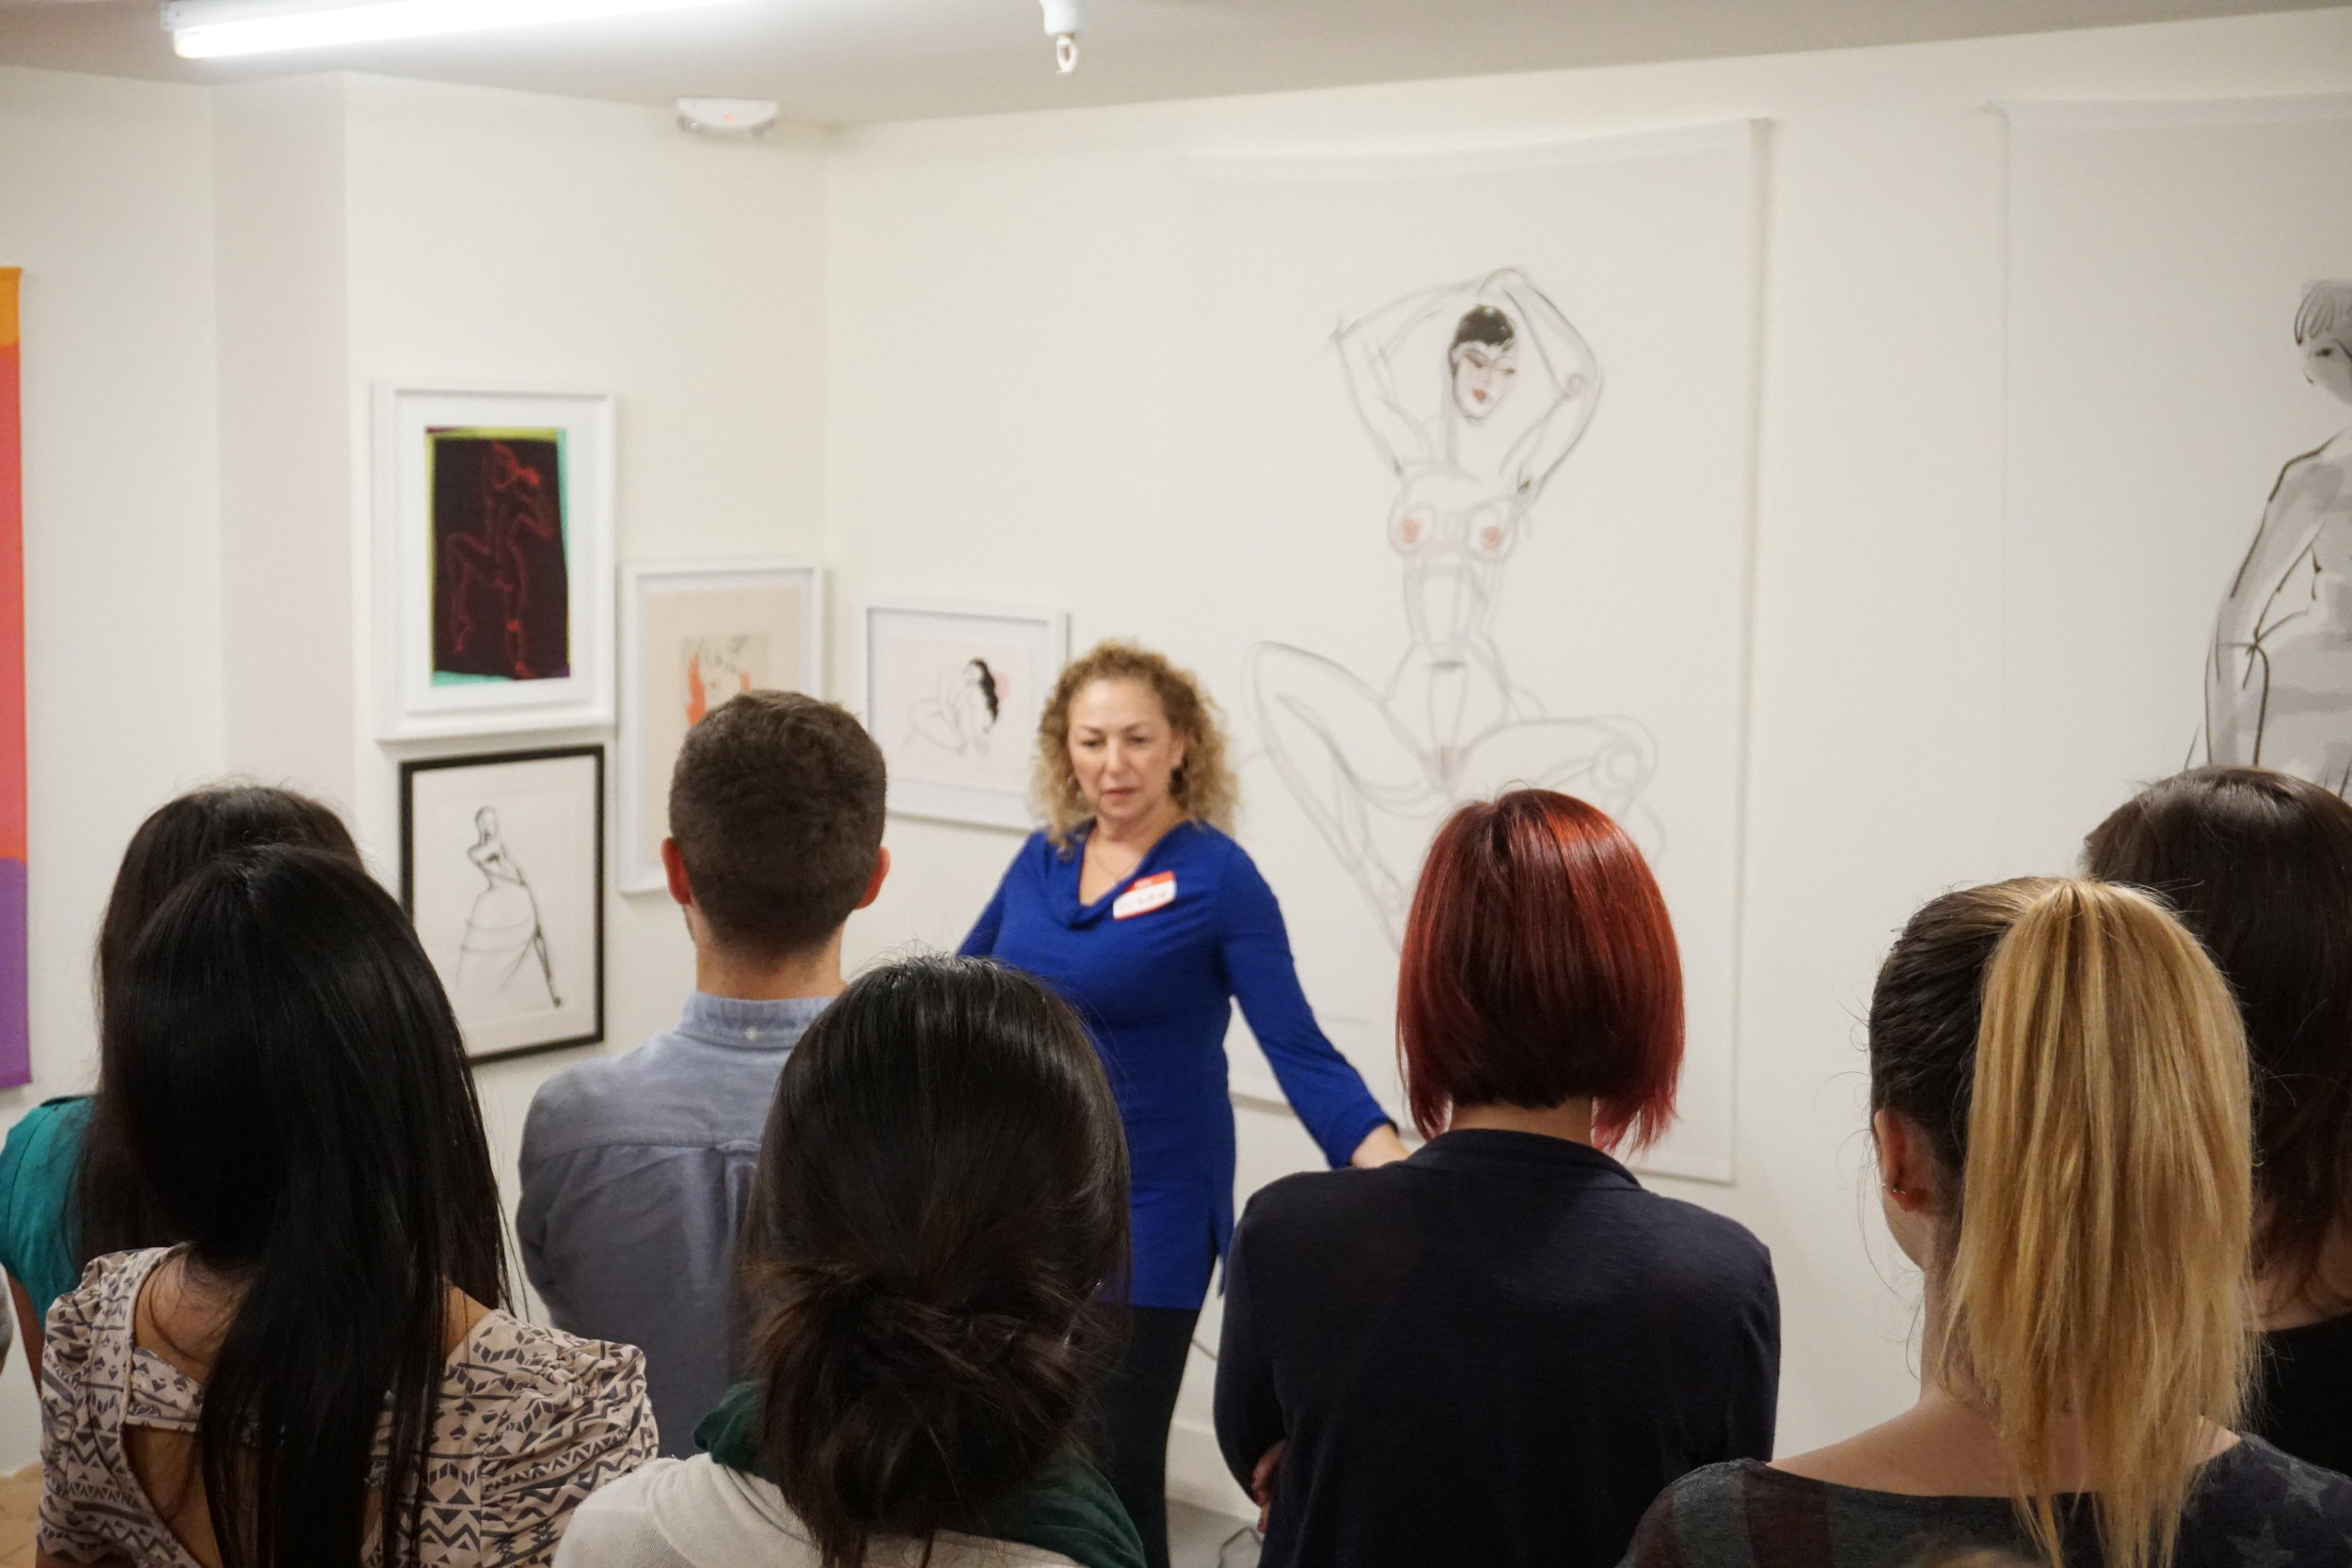 An art talk at The Laundry in 2016